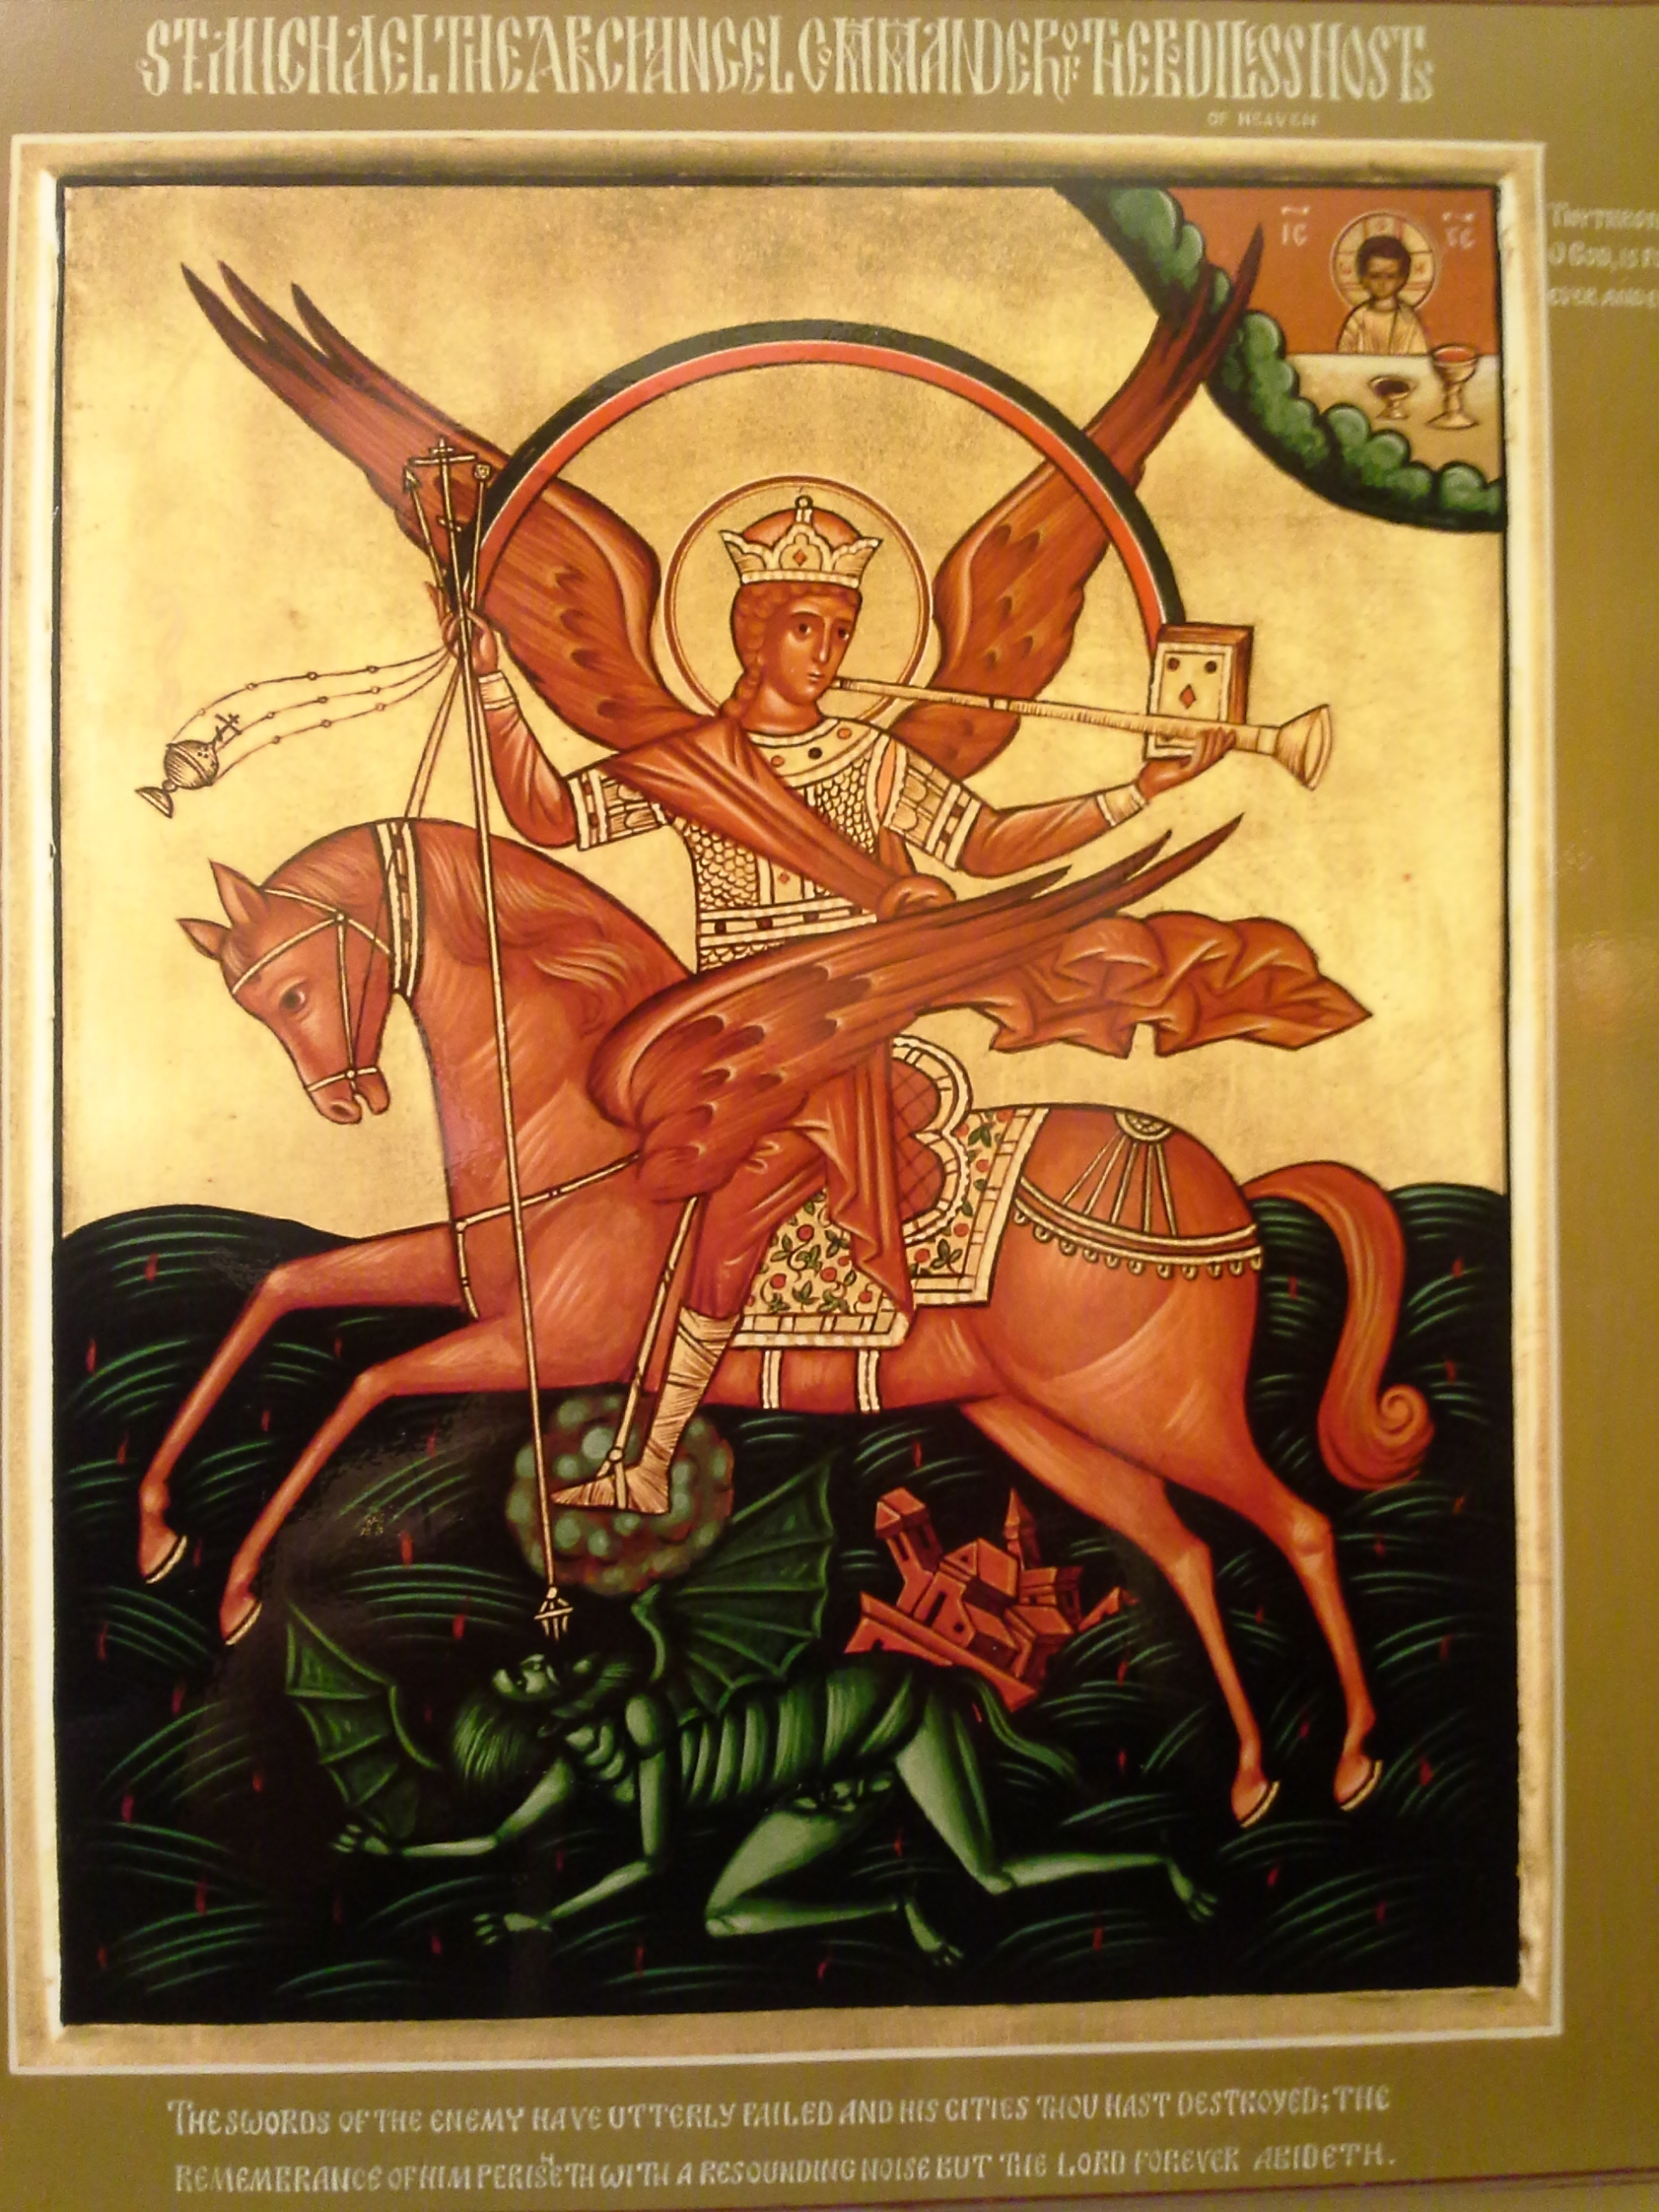 """We obtained this icon from Holy Transfiguration Monastery in Brookline, which has the best icons I've seen. The title is """"St. Michael the Archangel, Commander of the Bodiless Hosts of Heaven."""" You've got to love it. The verse below is from Psalm 9:6-7: """"The swords of the enemy have utterly failed and his cities thou hast destroyed; the remembrance of him perisheth with a resounding noise but the Lord forever abideth."""""""